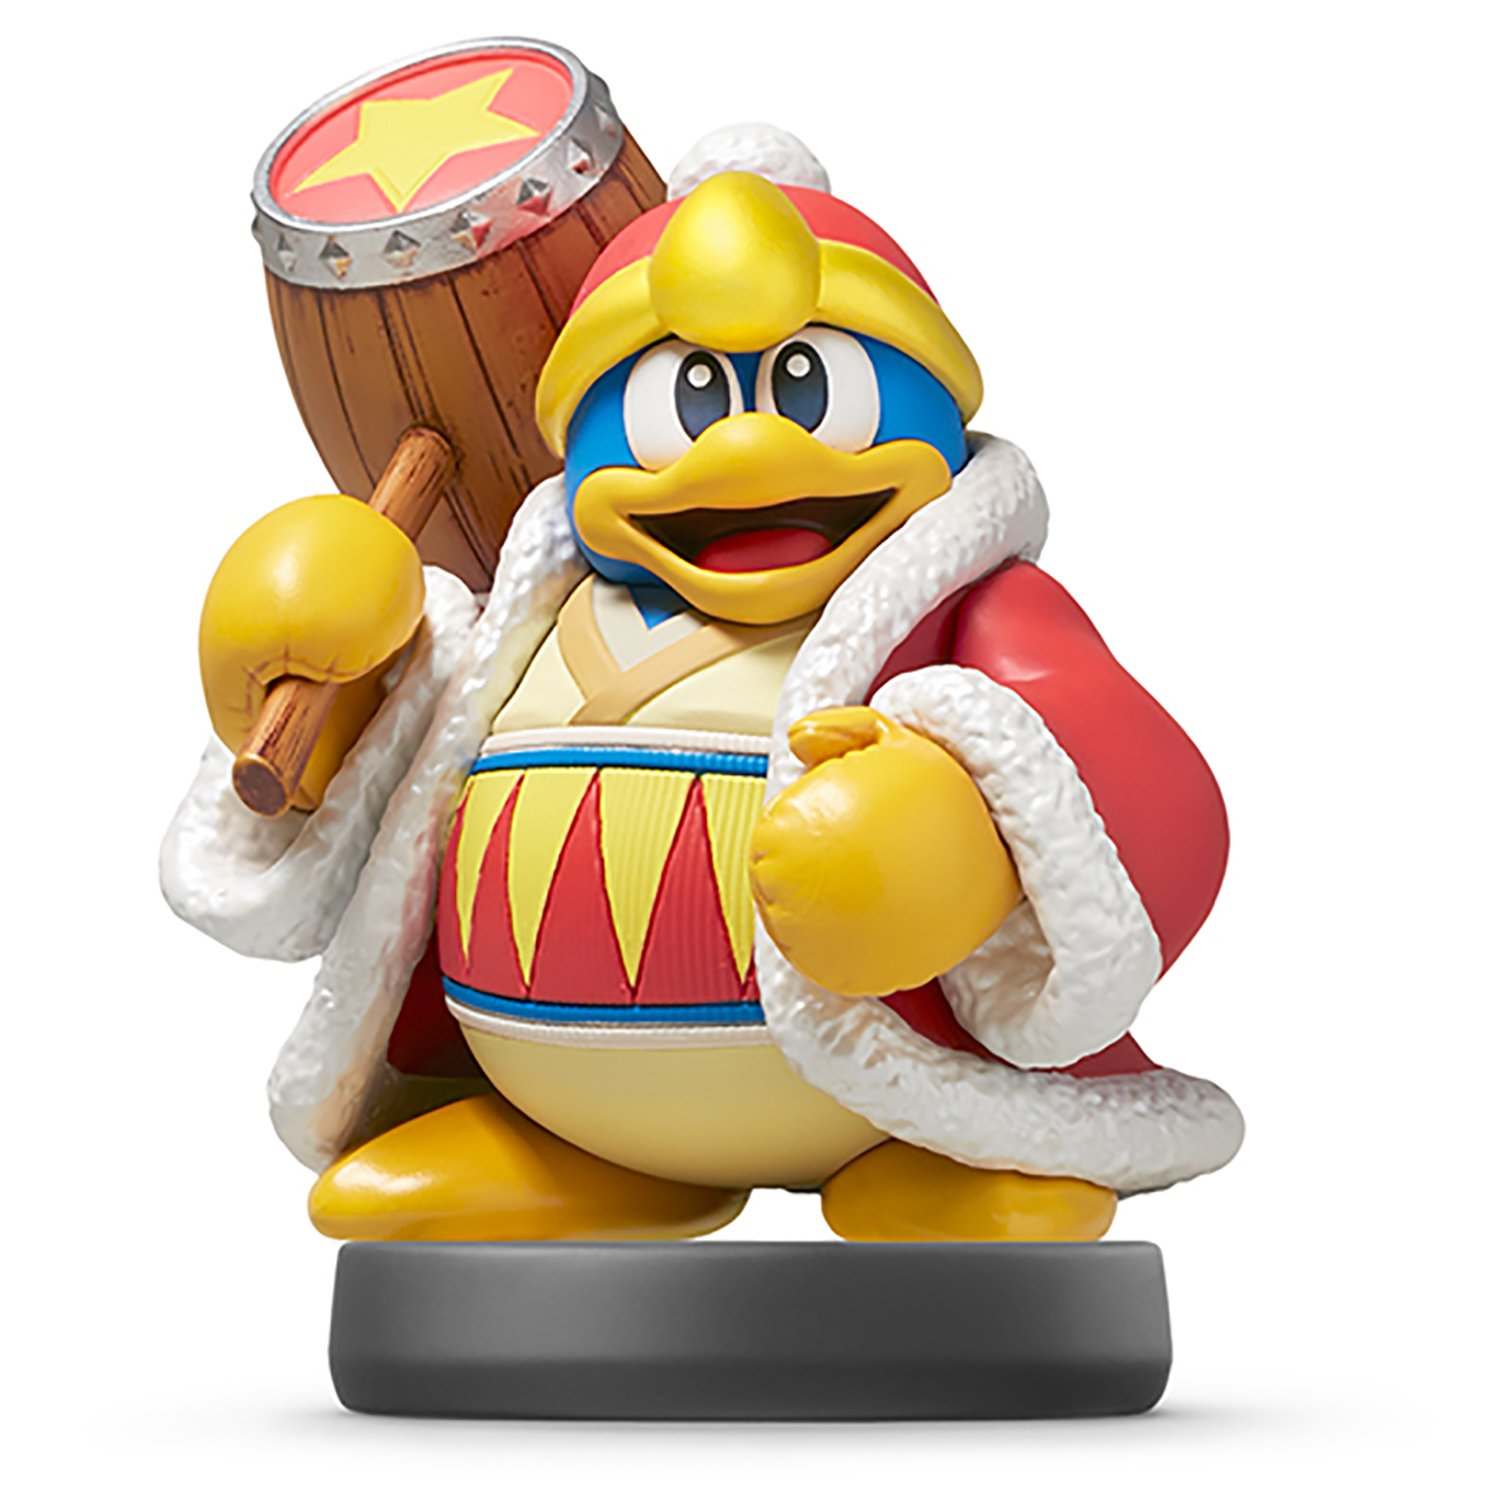 Nintendo Super Smash Bros King Dedede amiibo